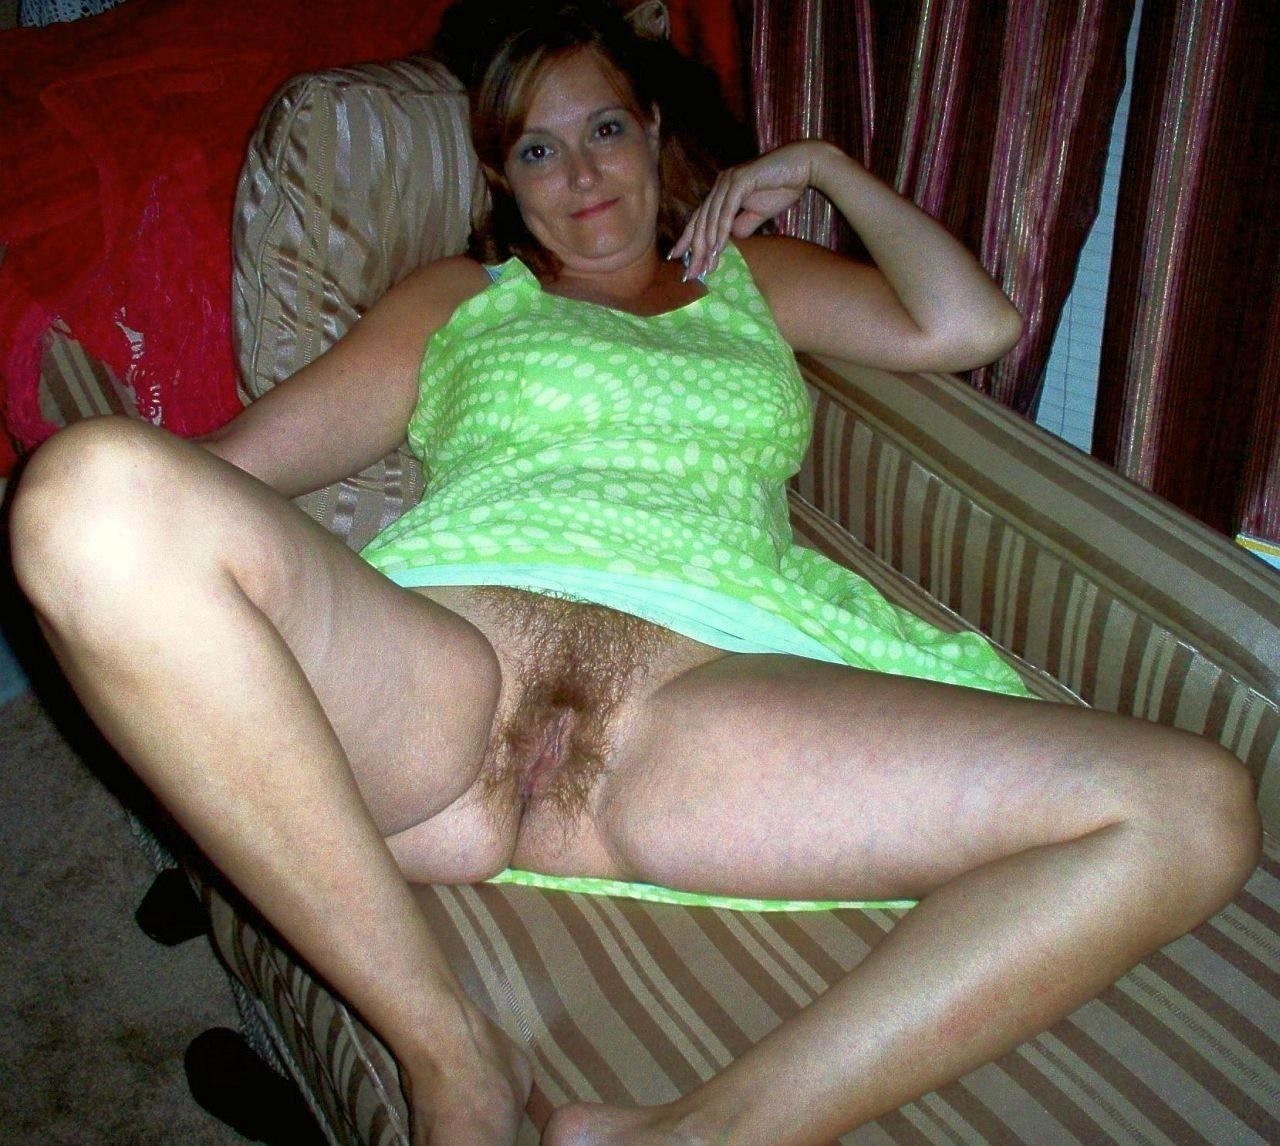 agree, mature lady riding big dick useful phrase think